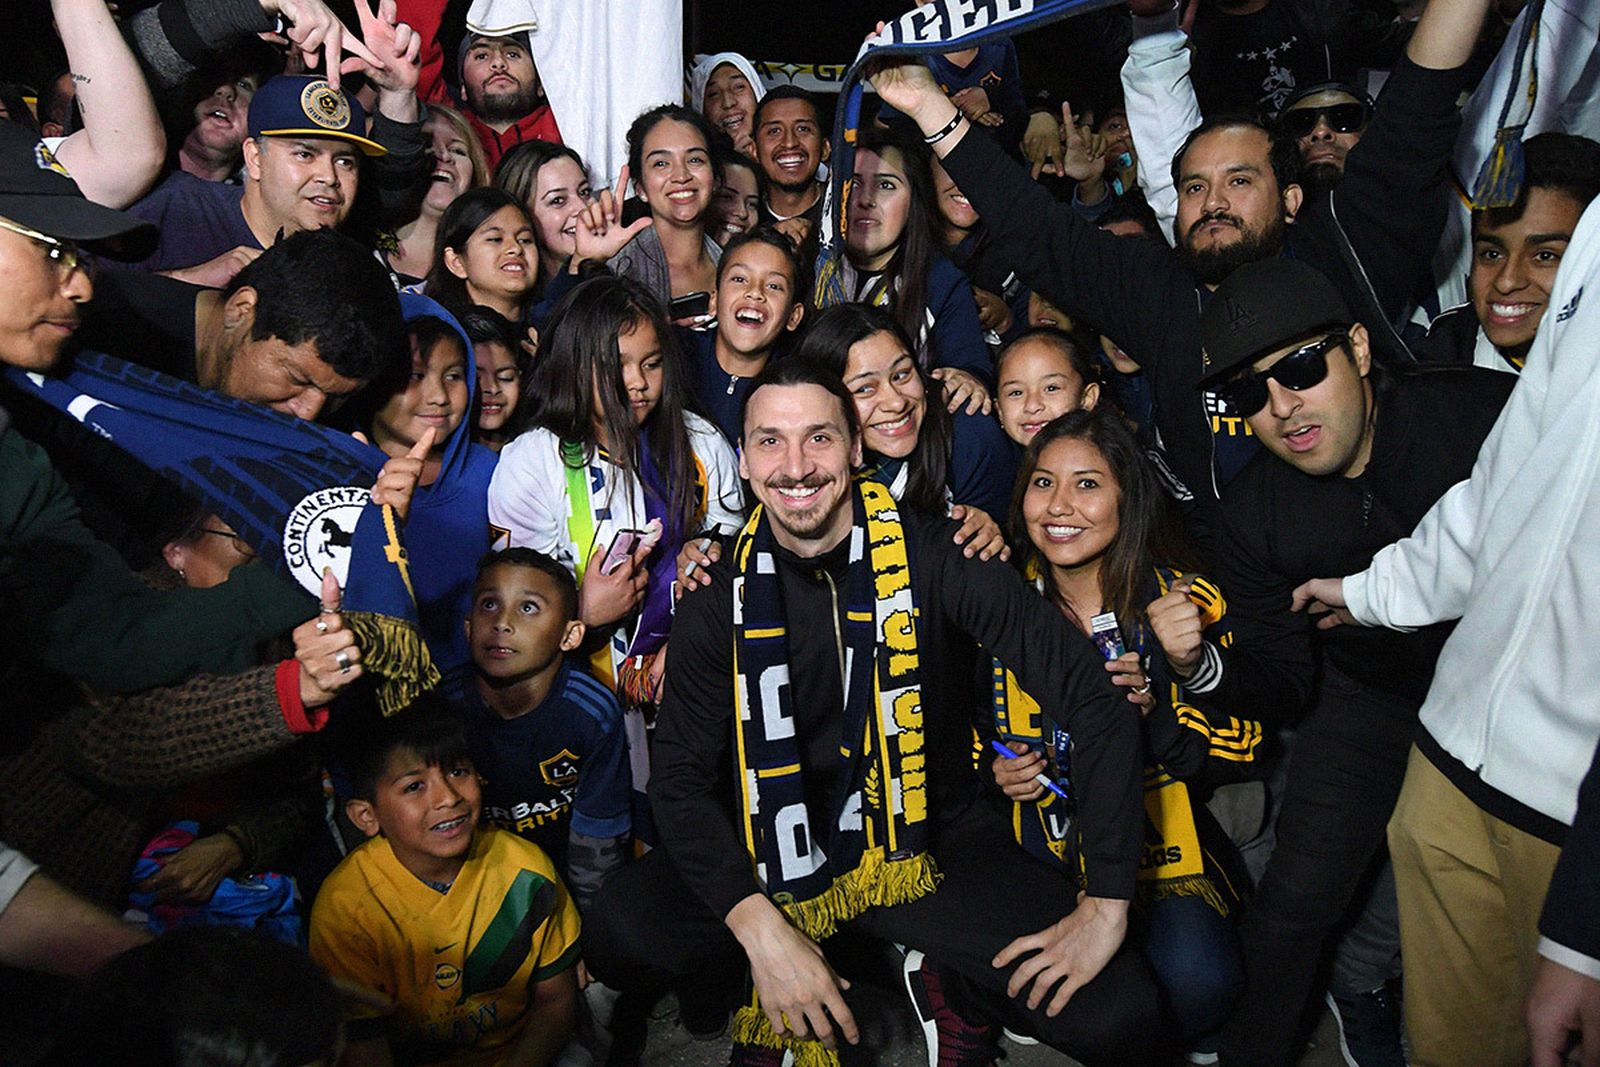 Zlatan Ibrahimovic is greeted by fans after arriving at Los Angeles International Airport to begin his new contract with LA Galaxy in Los Angeles, California.